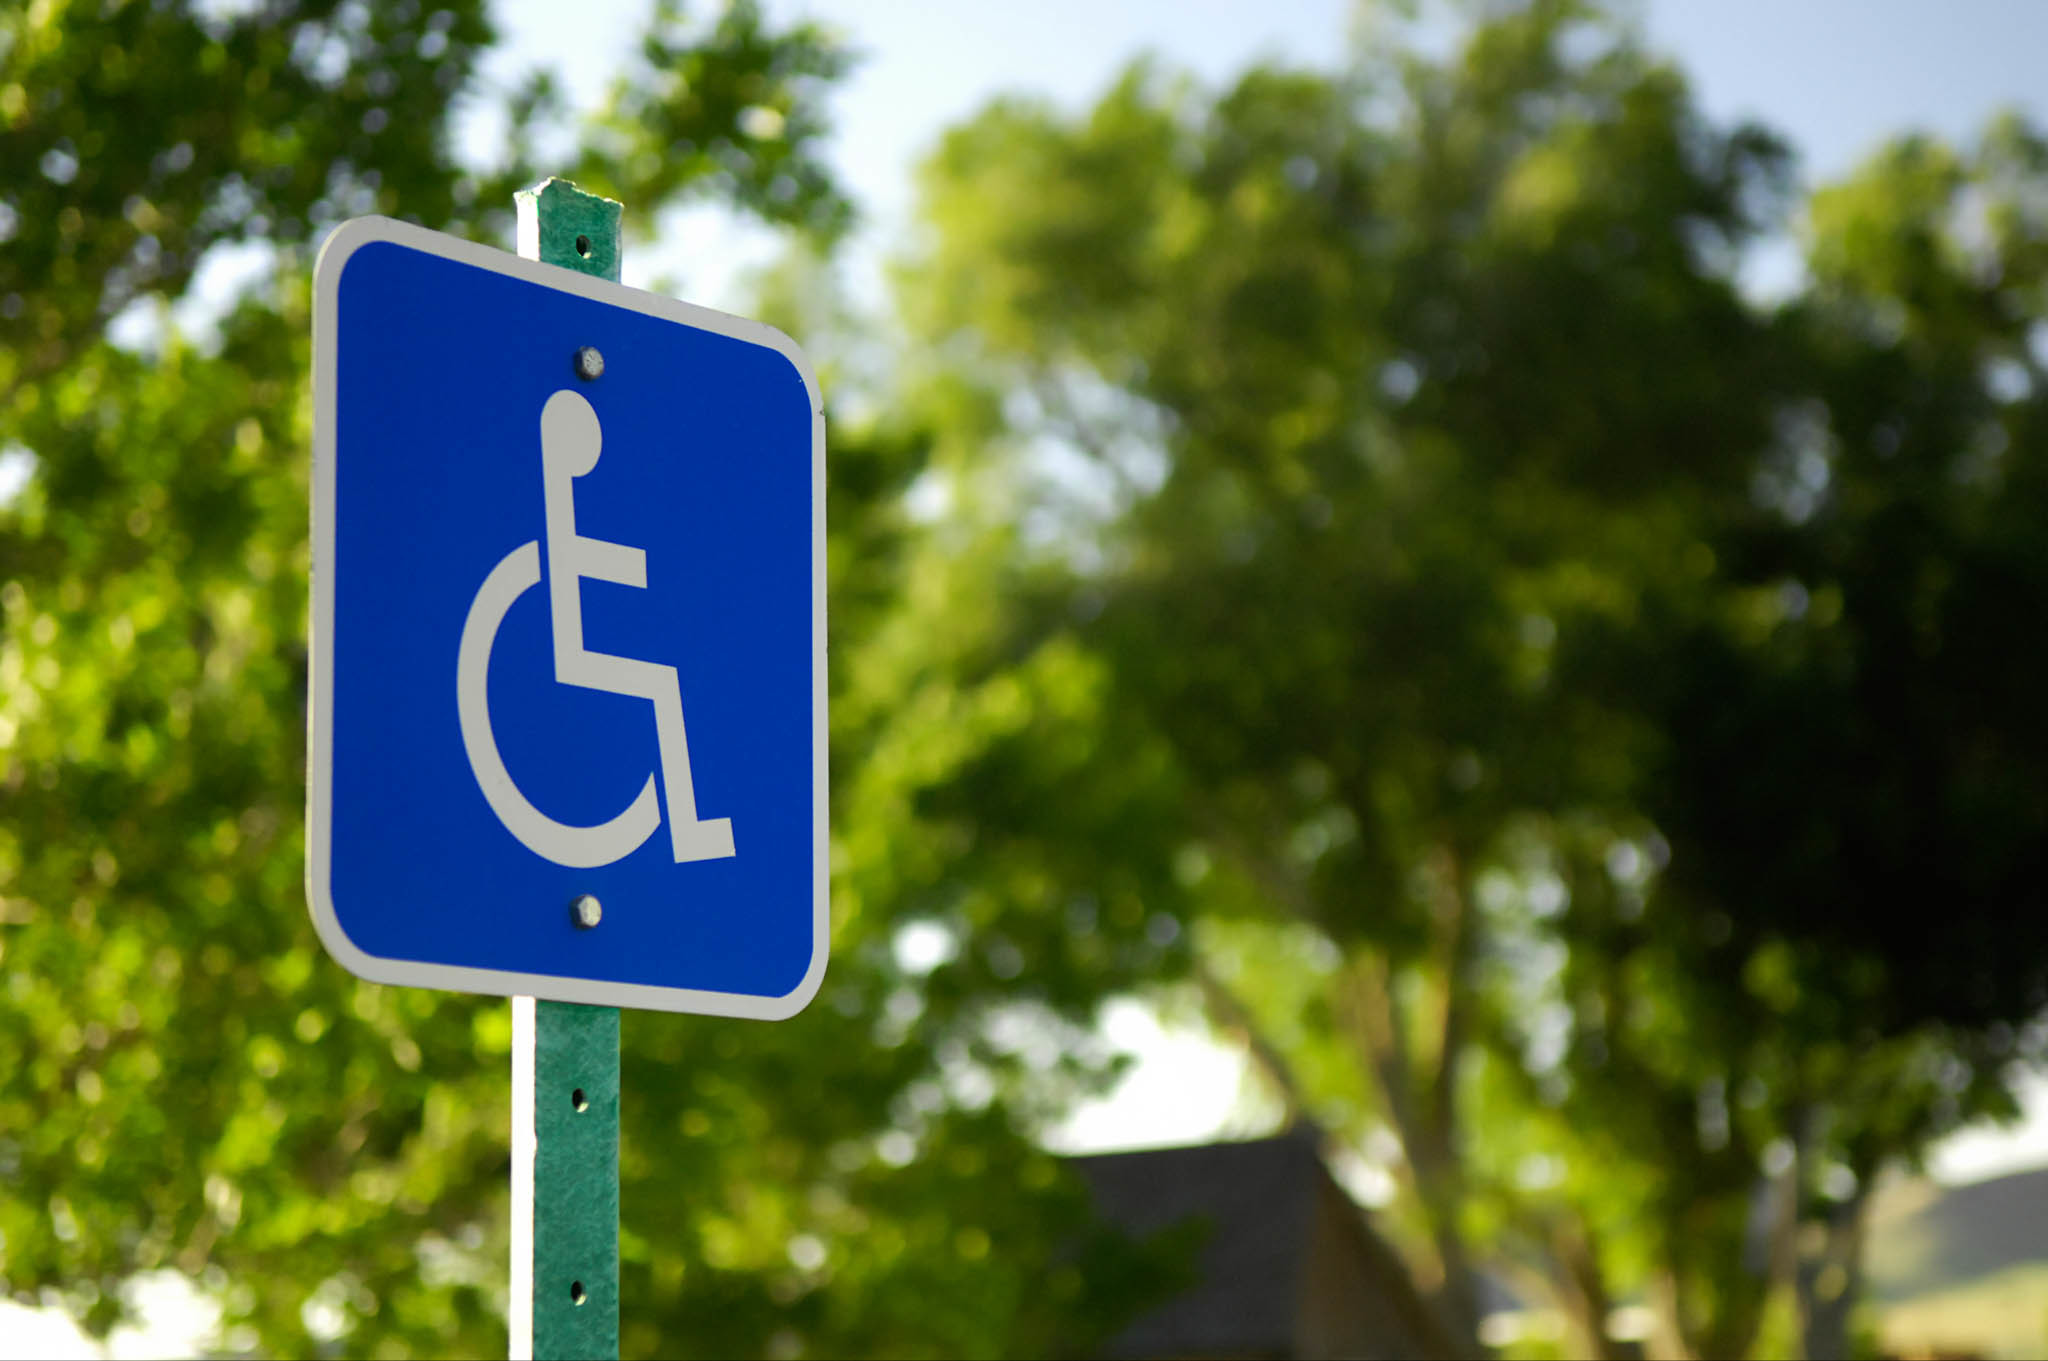 Accessible parking | City of Adelaide